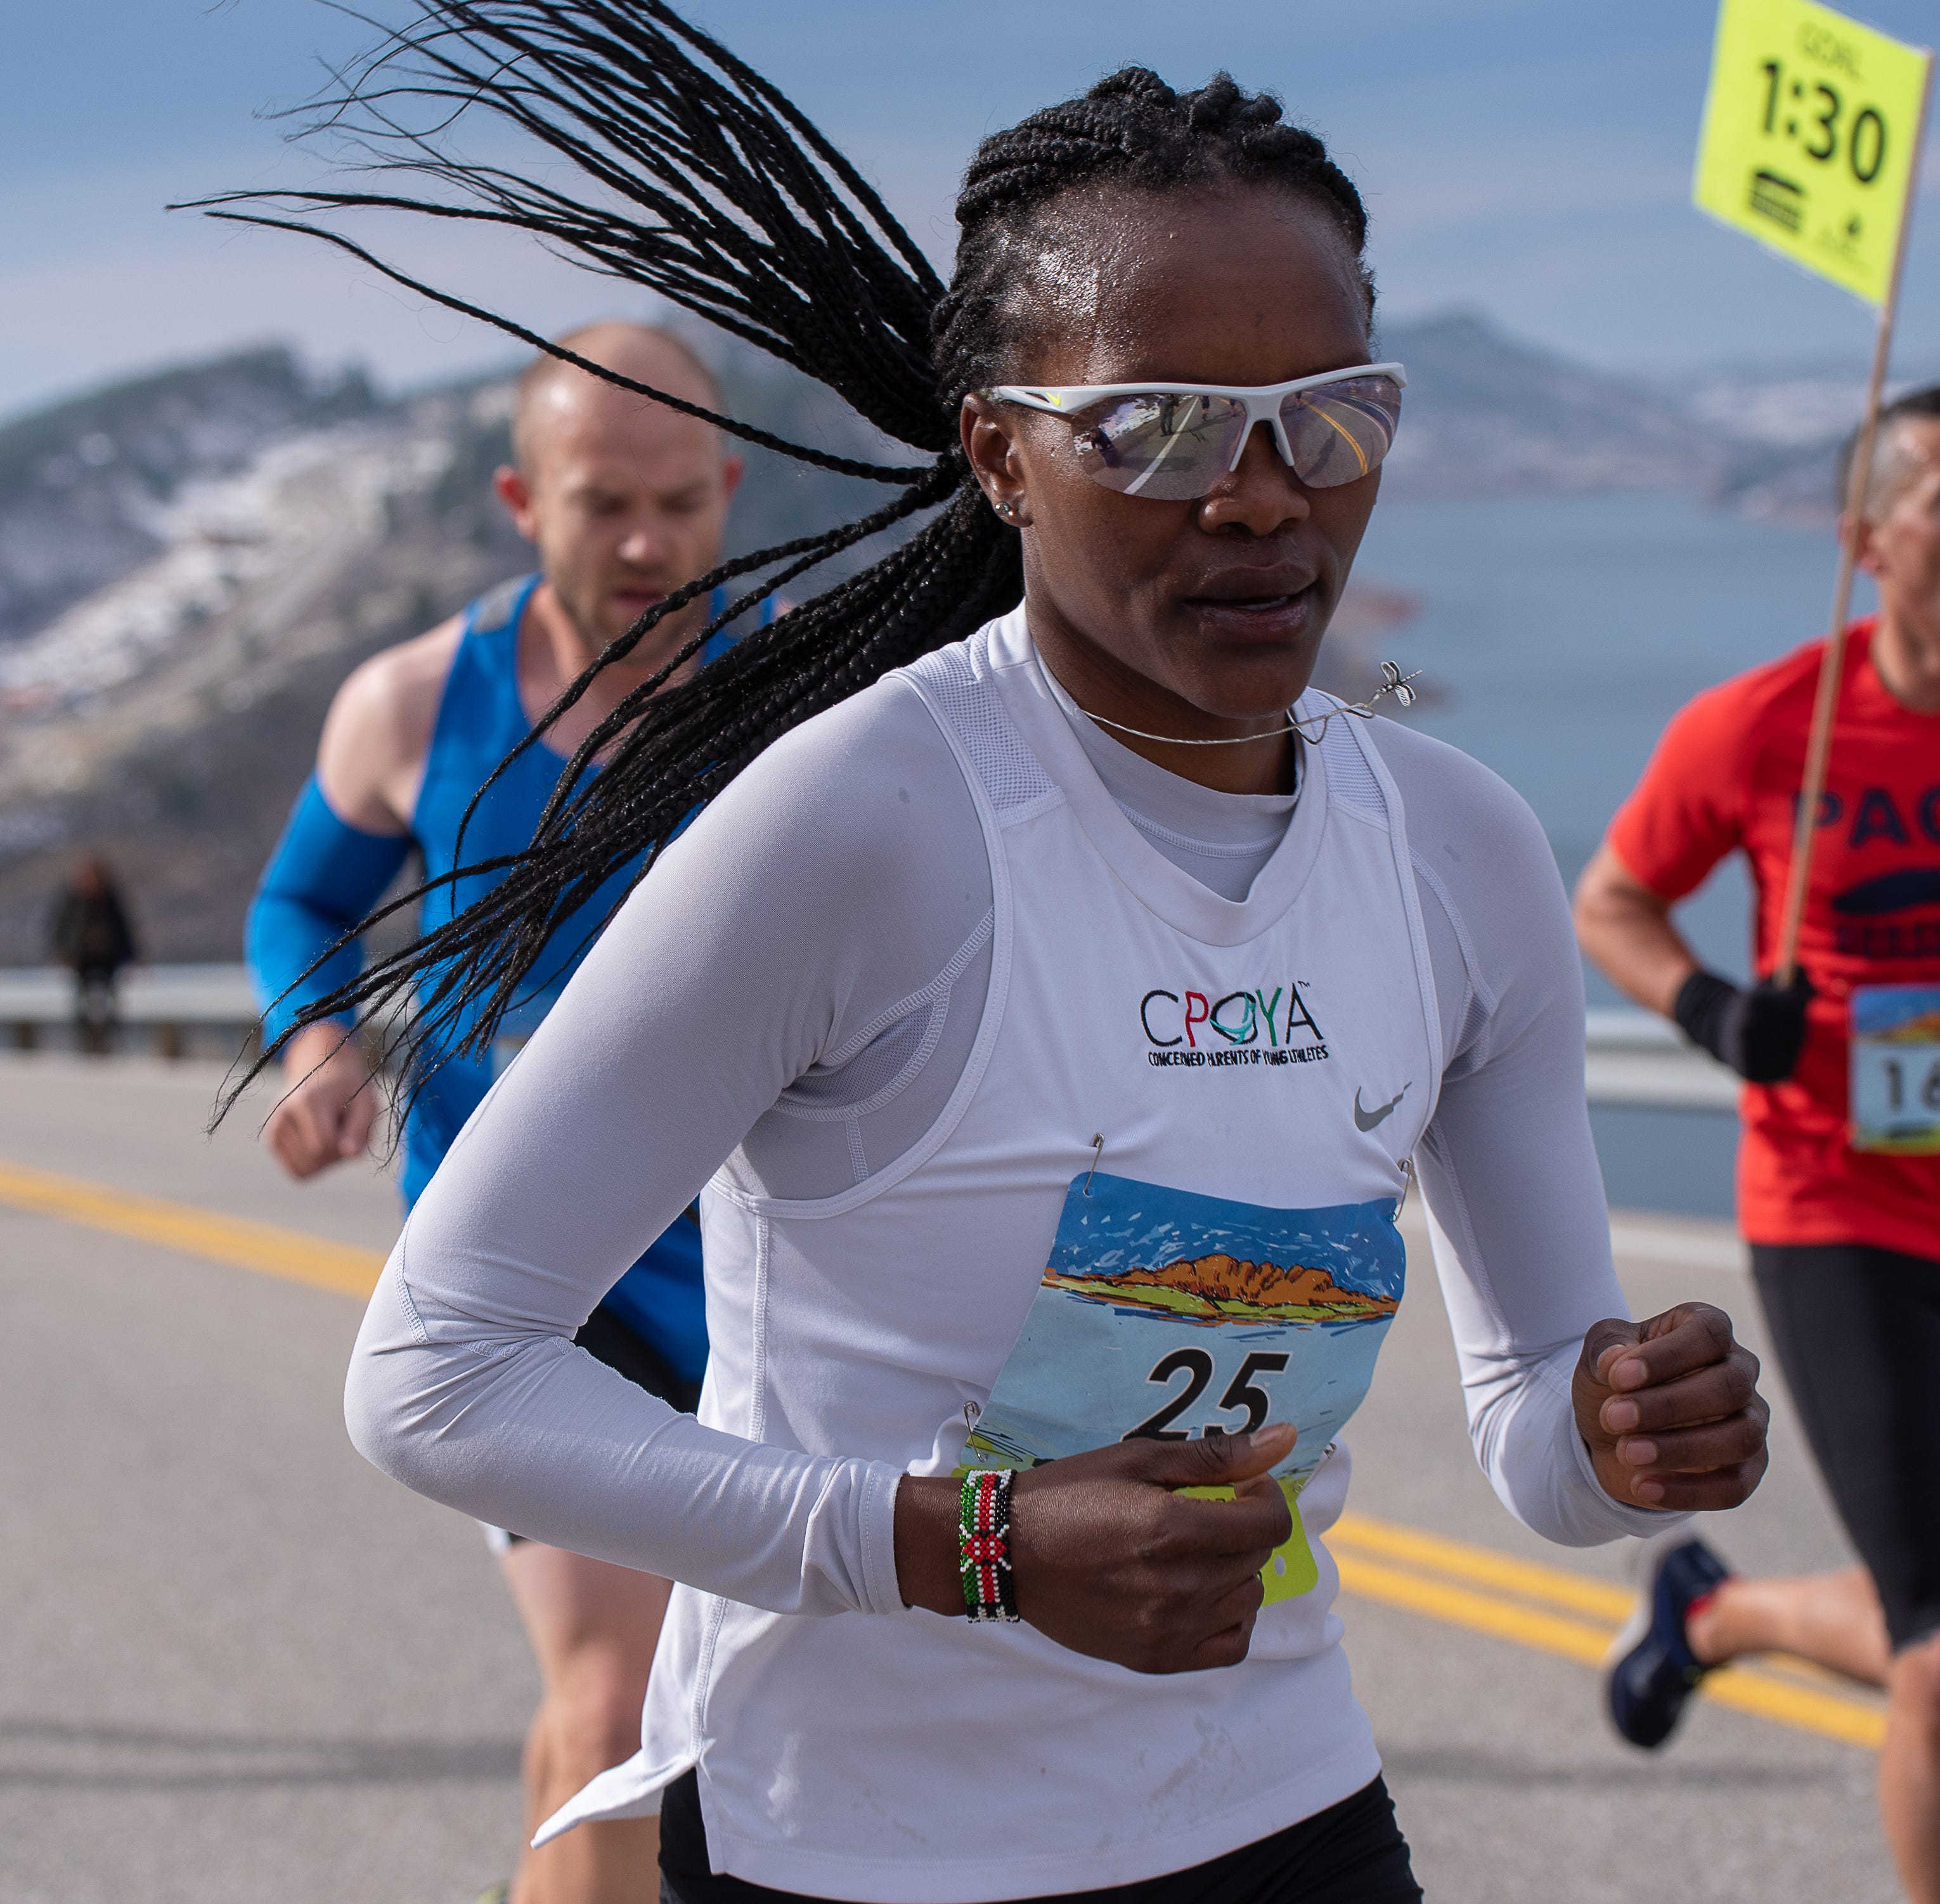 Kenyans Dominic Korir, Ivy Kibet take top prizes in 46th annual Horsetooth Half Marathon